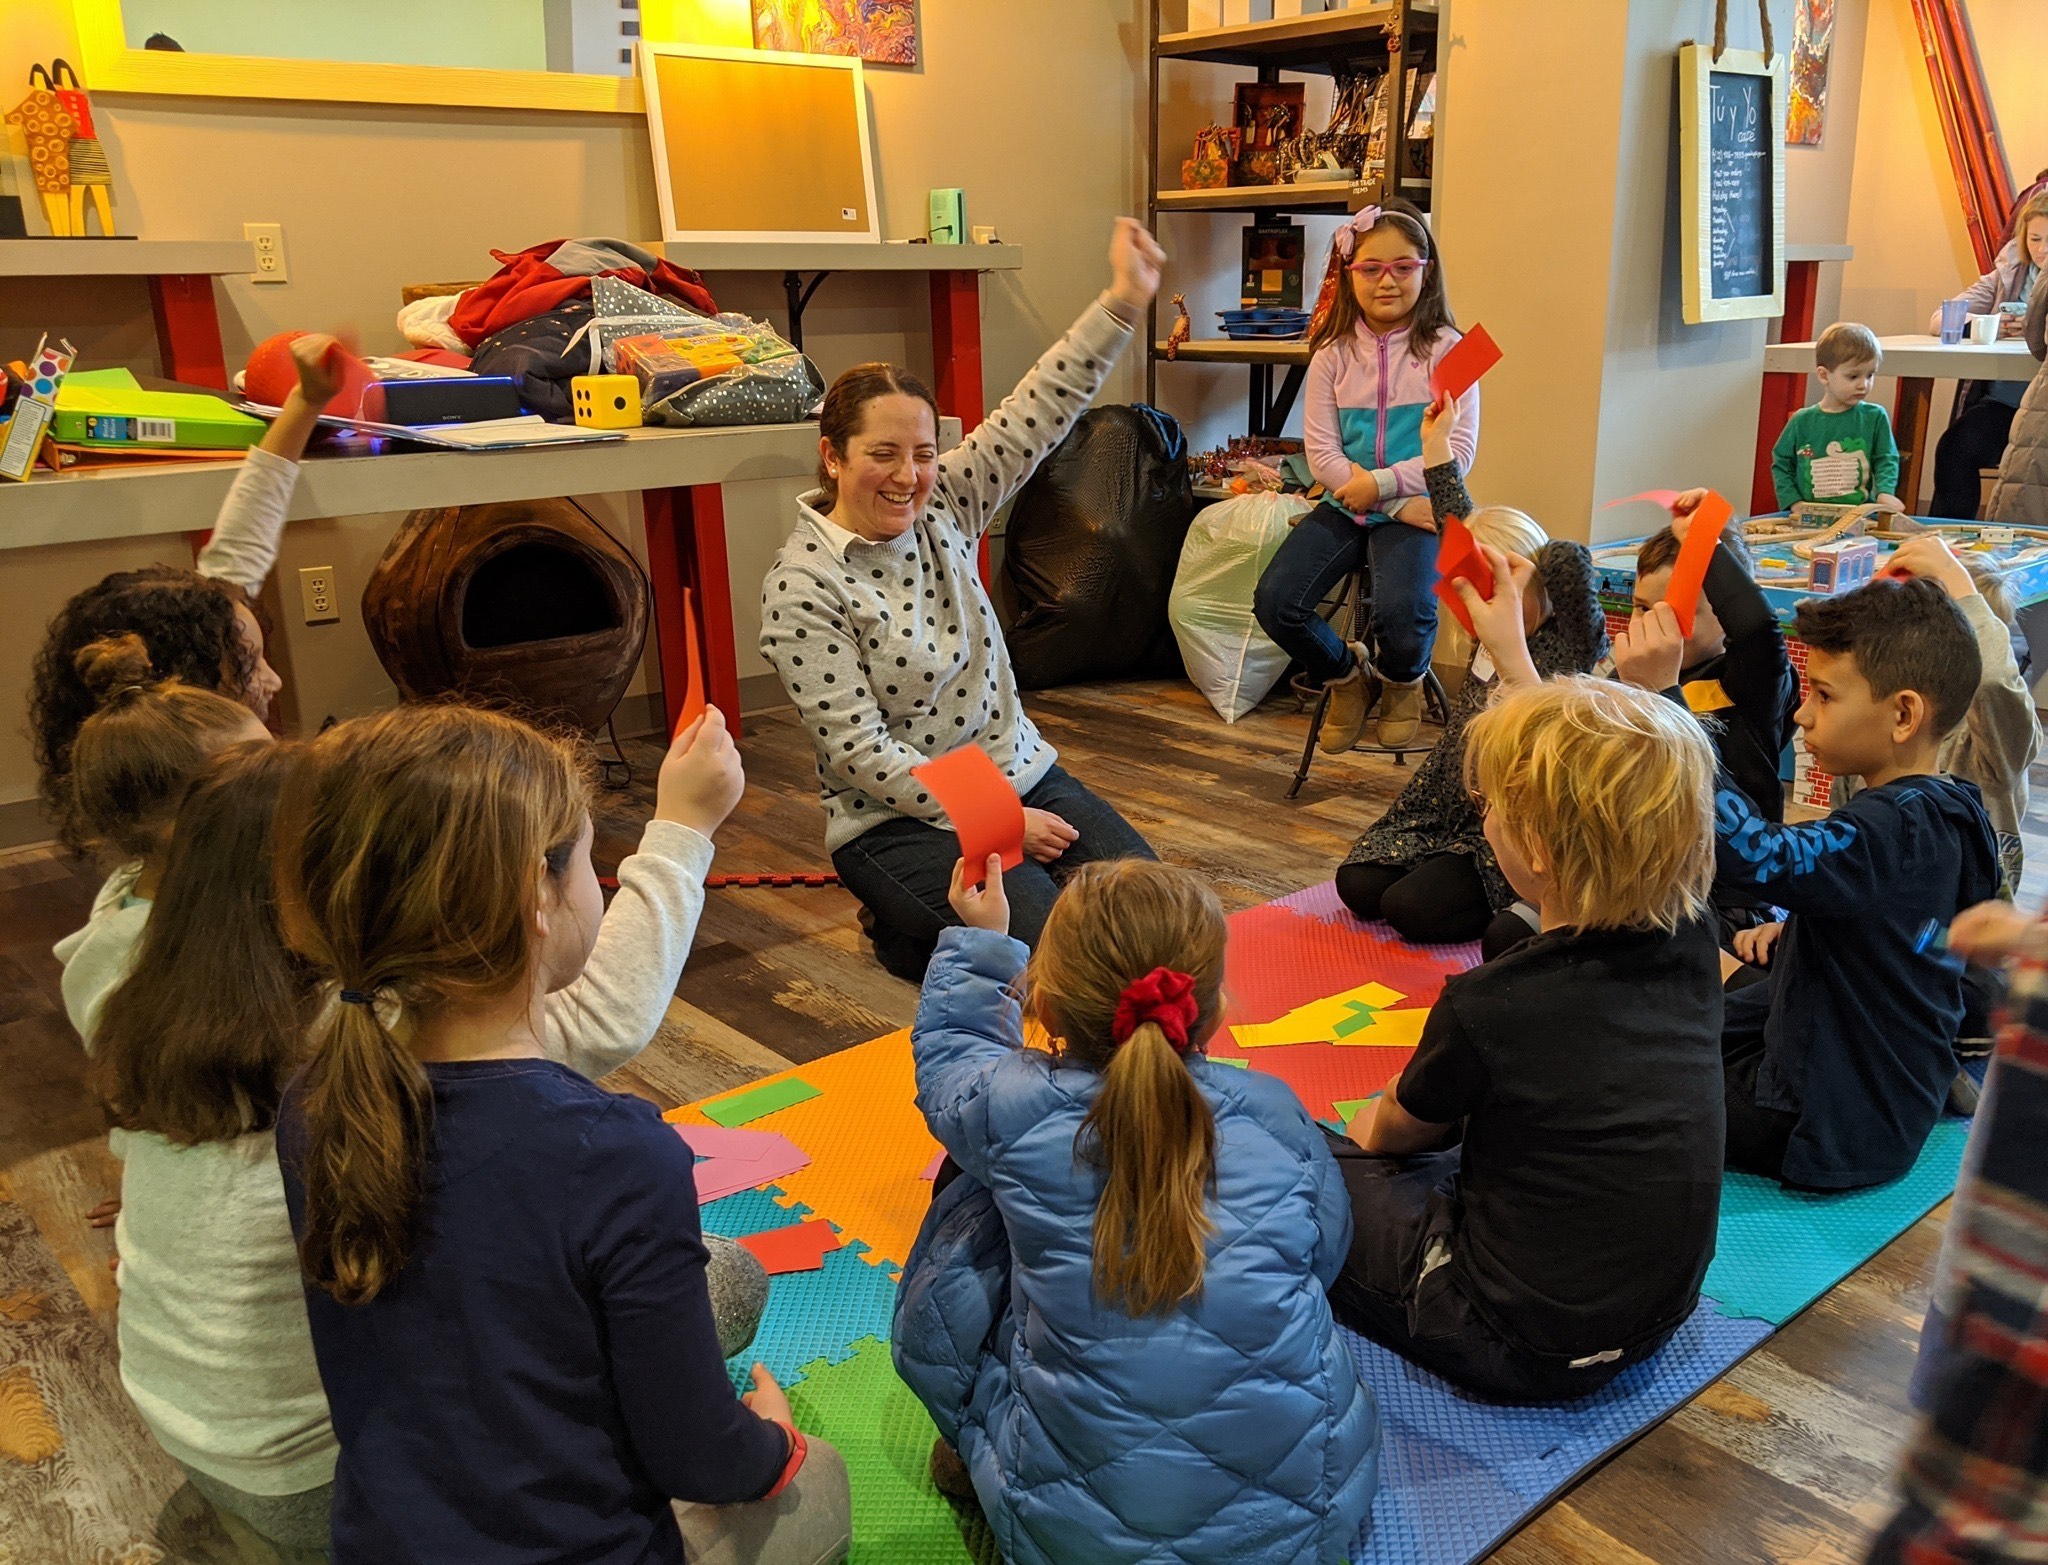 Spanish Storytime with Mrs. Bea: Connecting Local Kids to Hispanic Language and Cultures